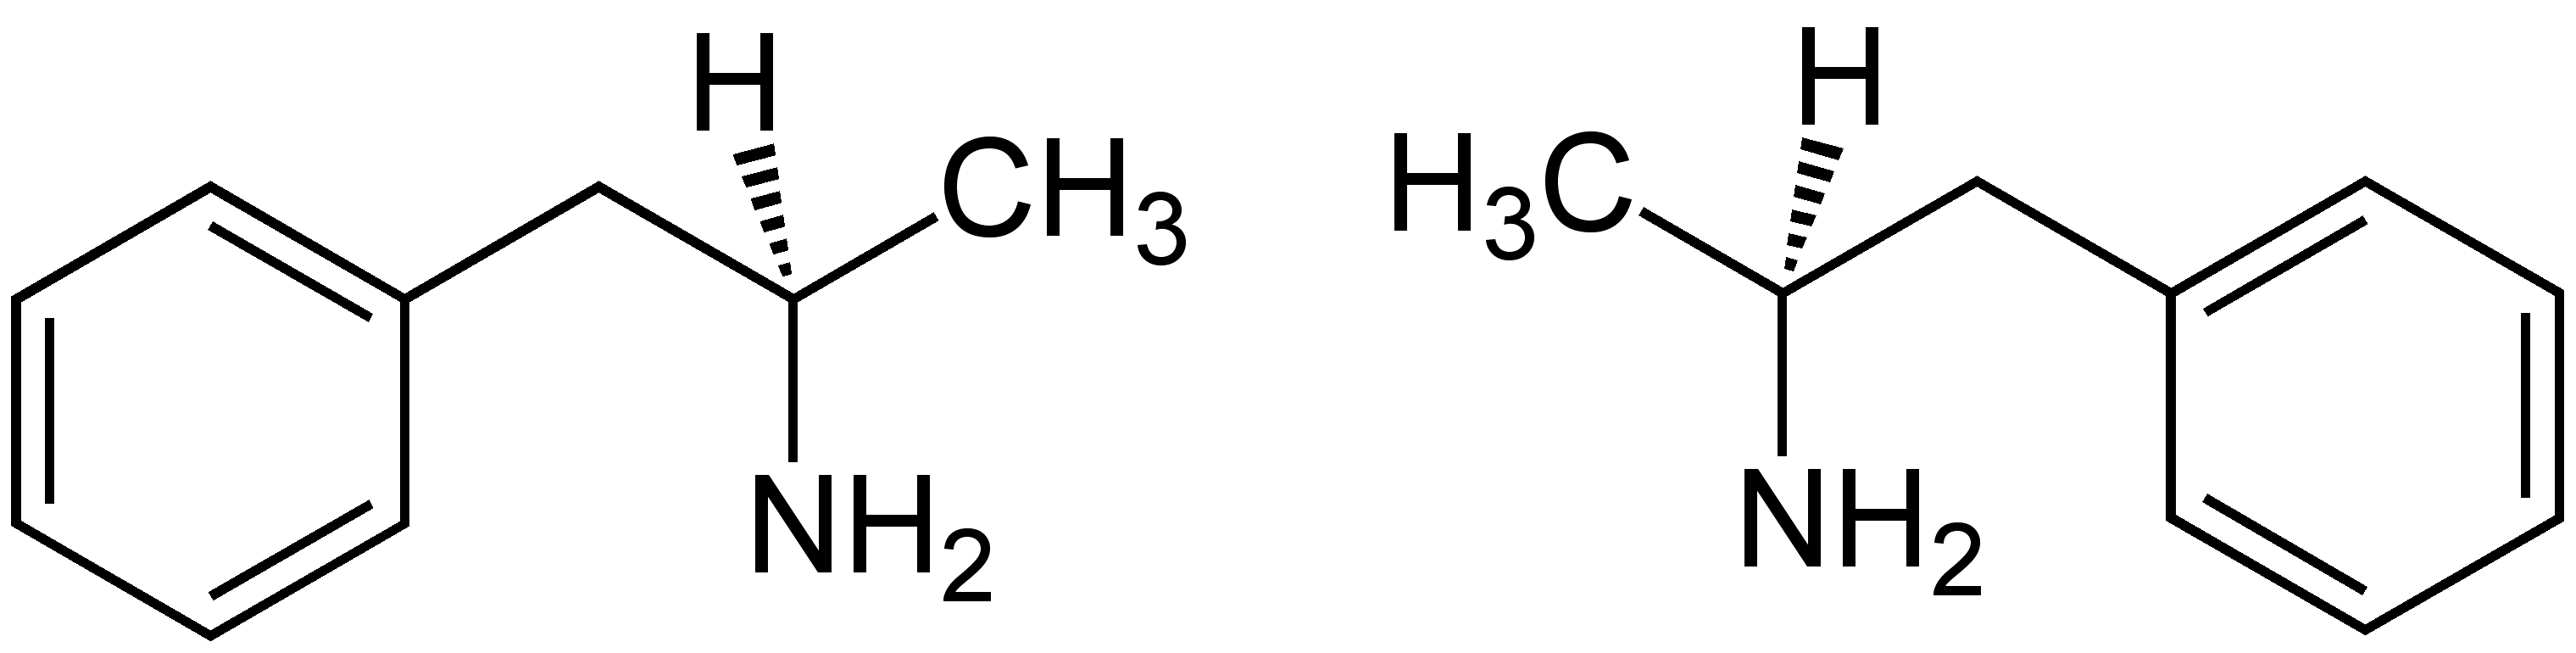 Dextroamphetamine (left) and levoamphetamine. Note that Dextroamphetamine is actually the S enantiomer, but is named for the direction in which it rotates polarized light.